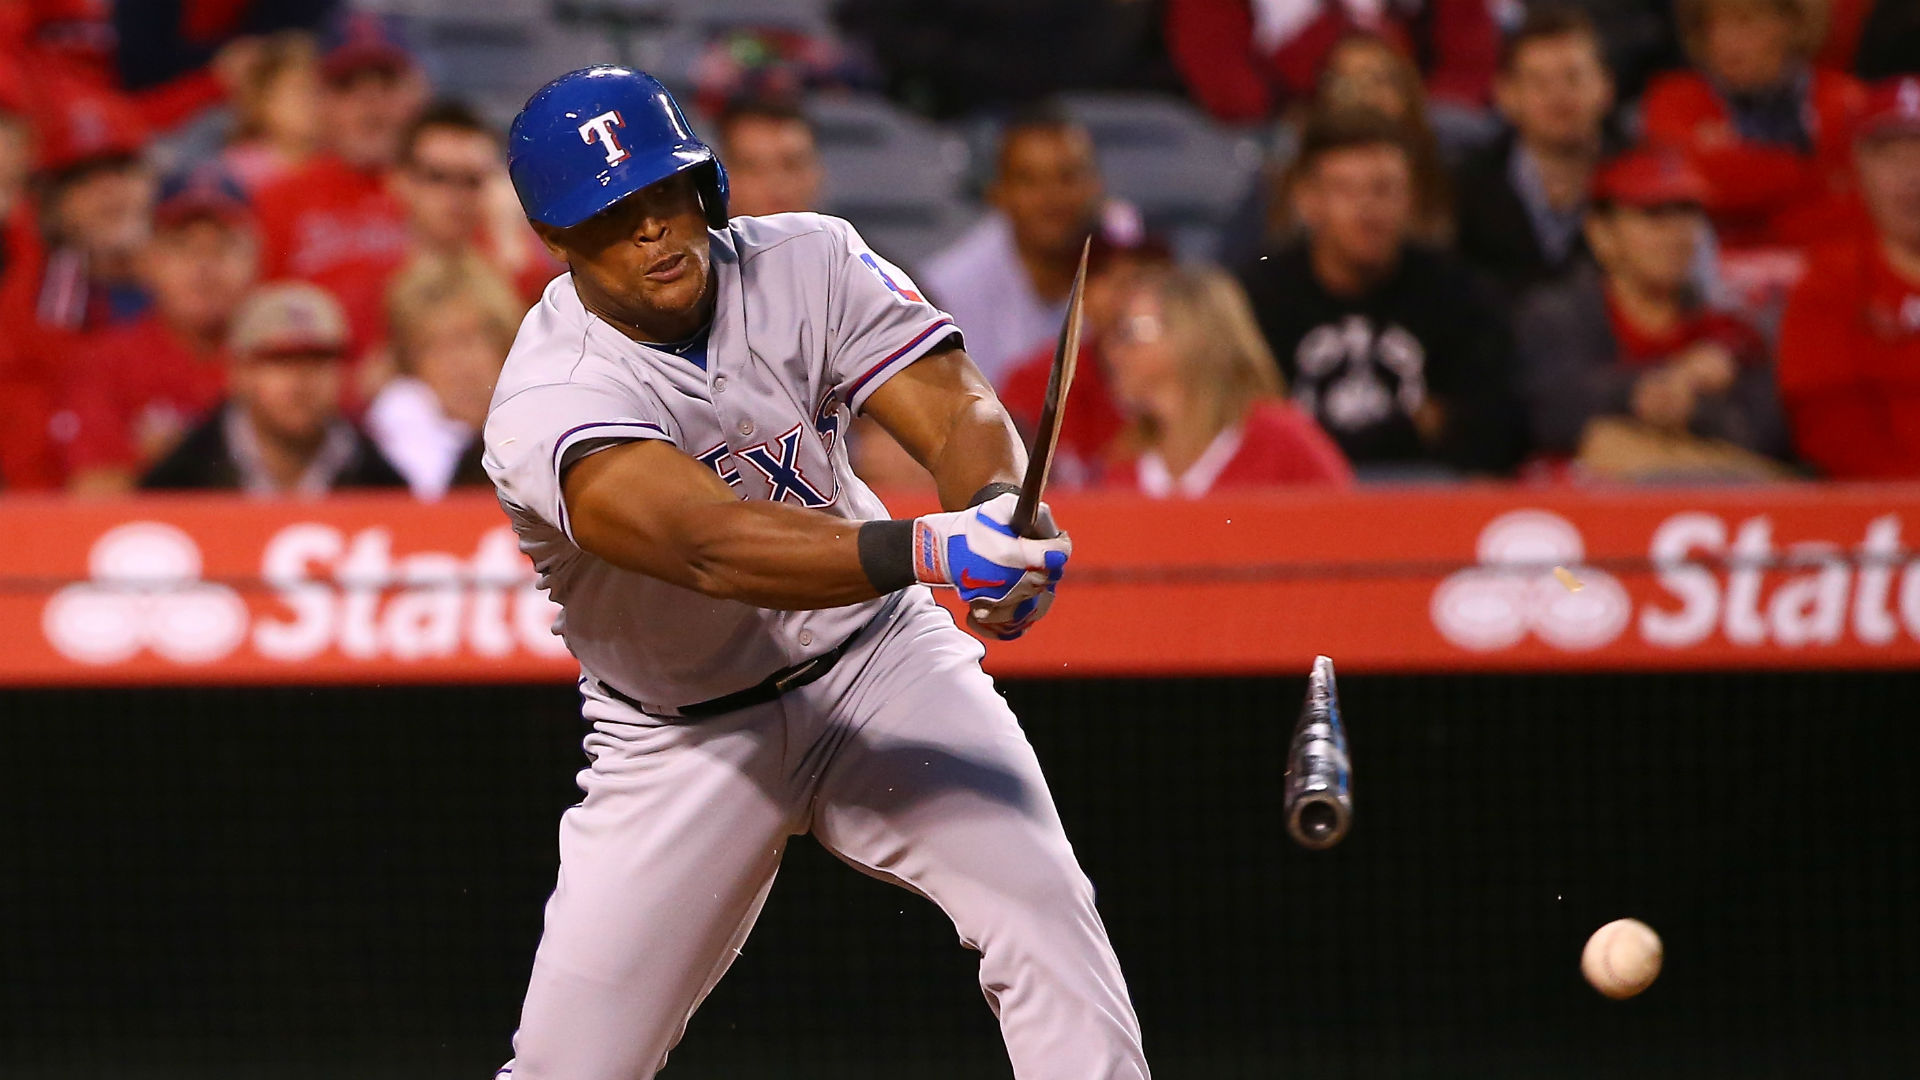 Rangers' Adrian Beltre breaks three bats, sends Angels' Garrett Richards an invoice